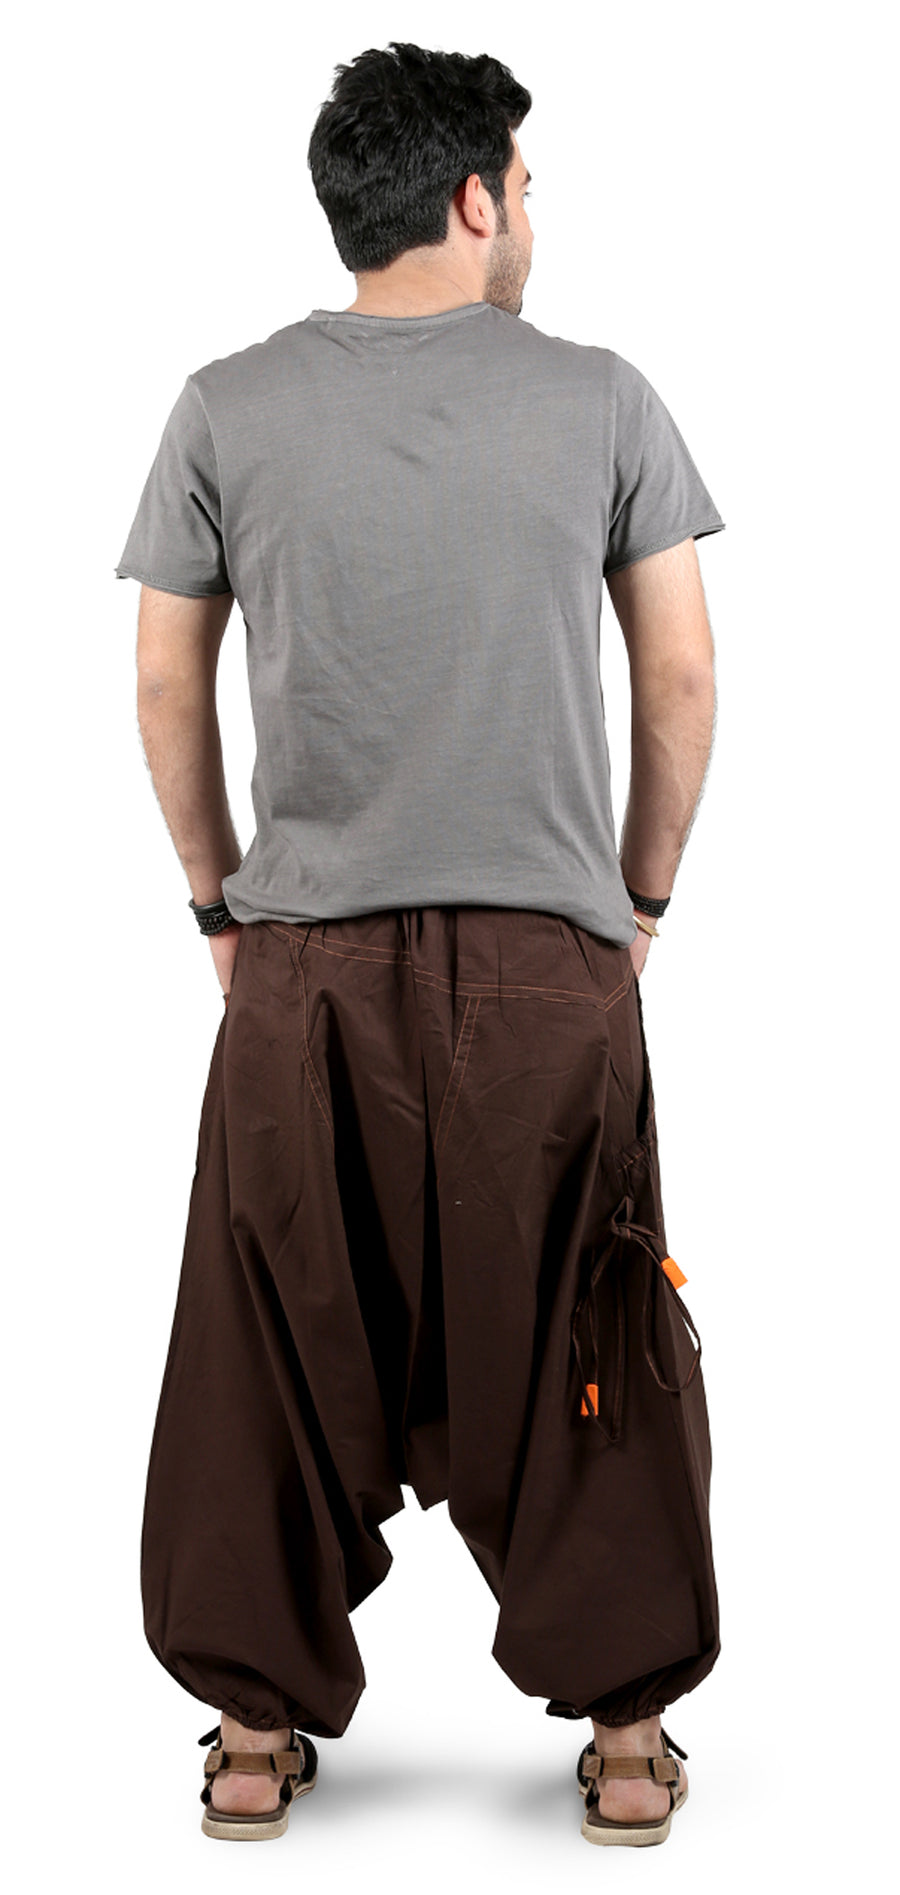 Harem Pants, Brown Harem Pants, Show me some Mens Harem Pants, Show me some Womens Harem Pants, What is a harem pant, Show me some baggy pants, I want to buy harem pants, cool harem pants, Wide leg harem Pants, Cheap Harem Pants, Show me best harem pants, Highly rated Harem Pants